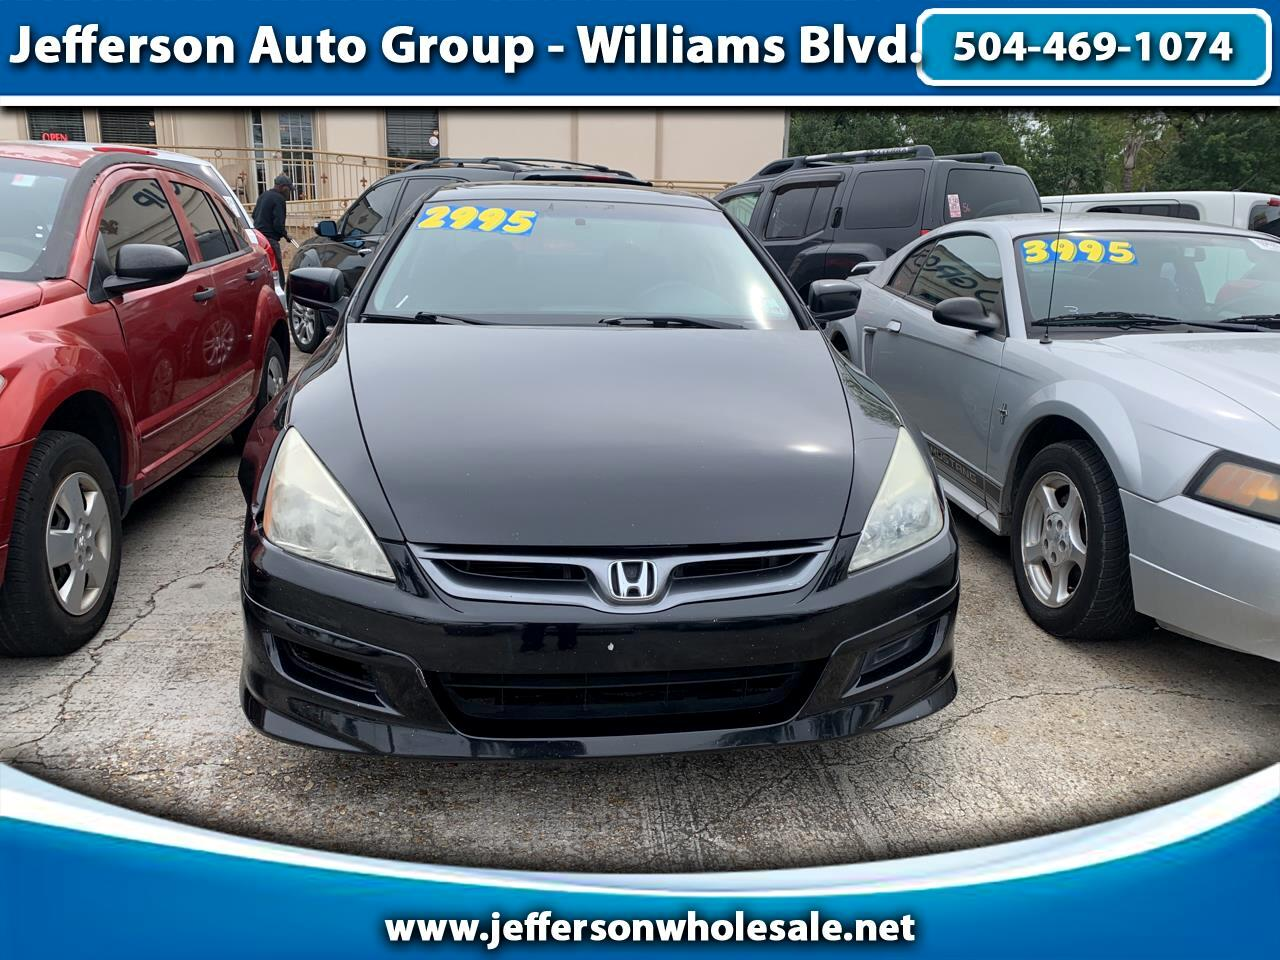 2007 Honda Accord Cpe 2dr I4 AT EX-L w/Navi